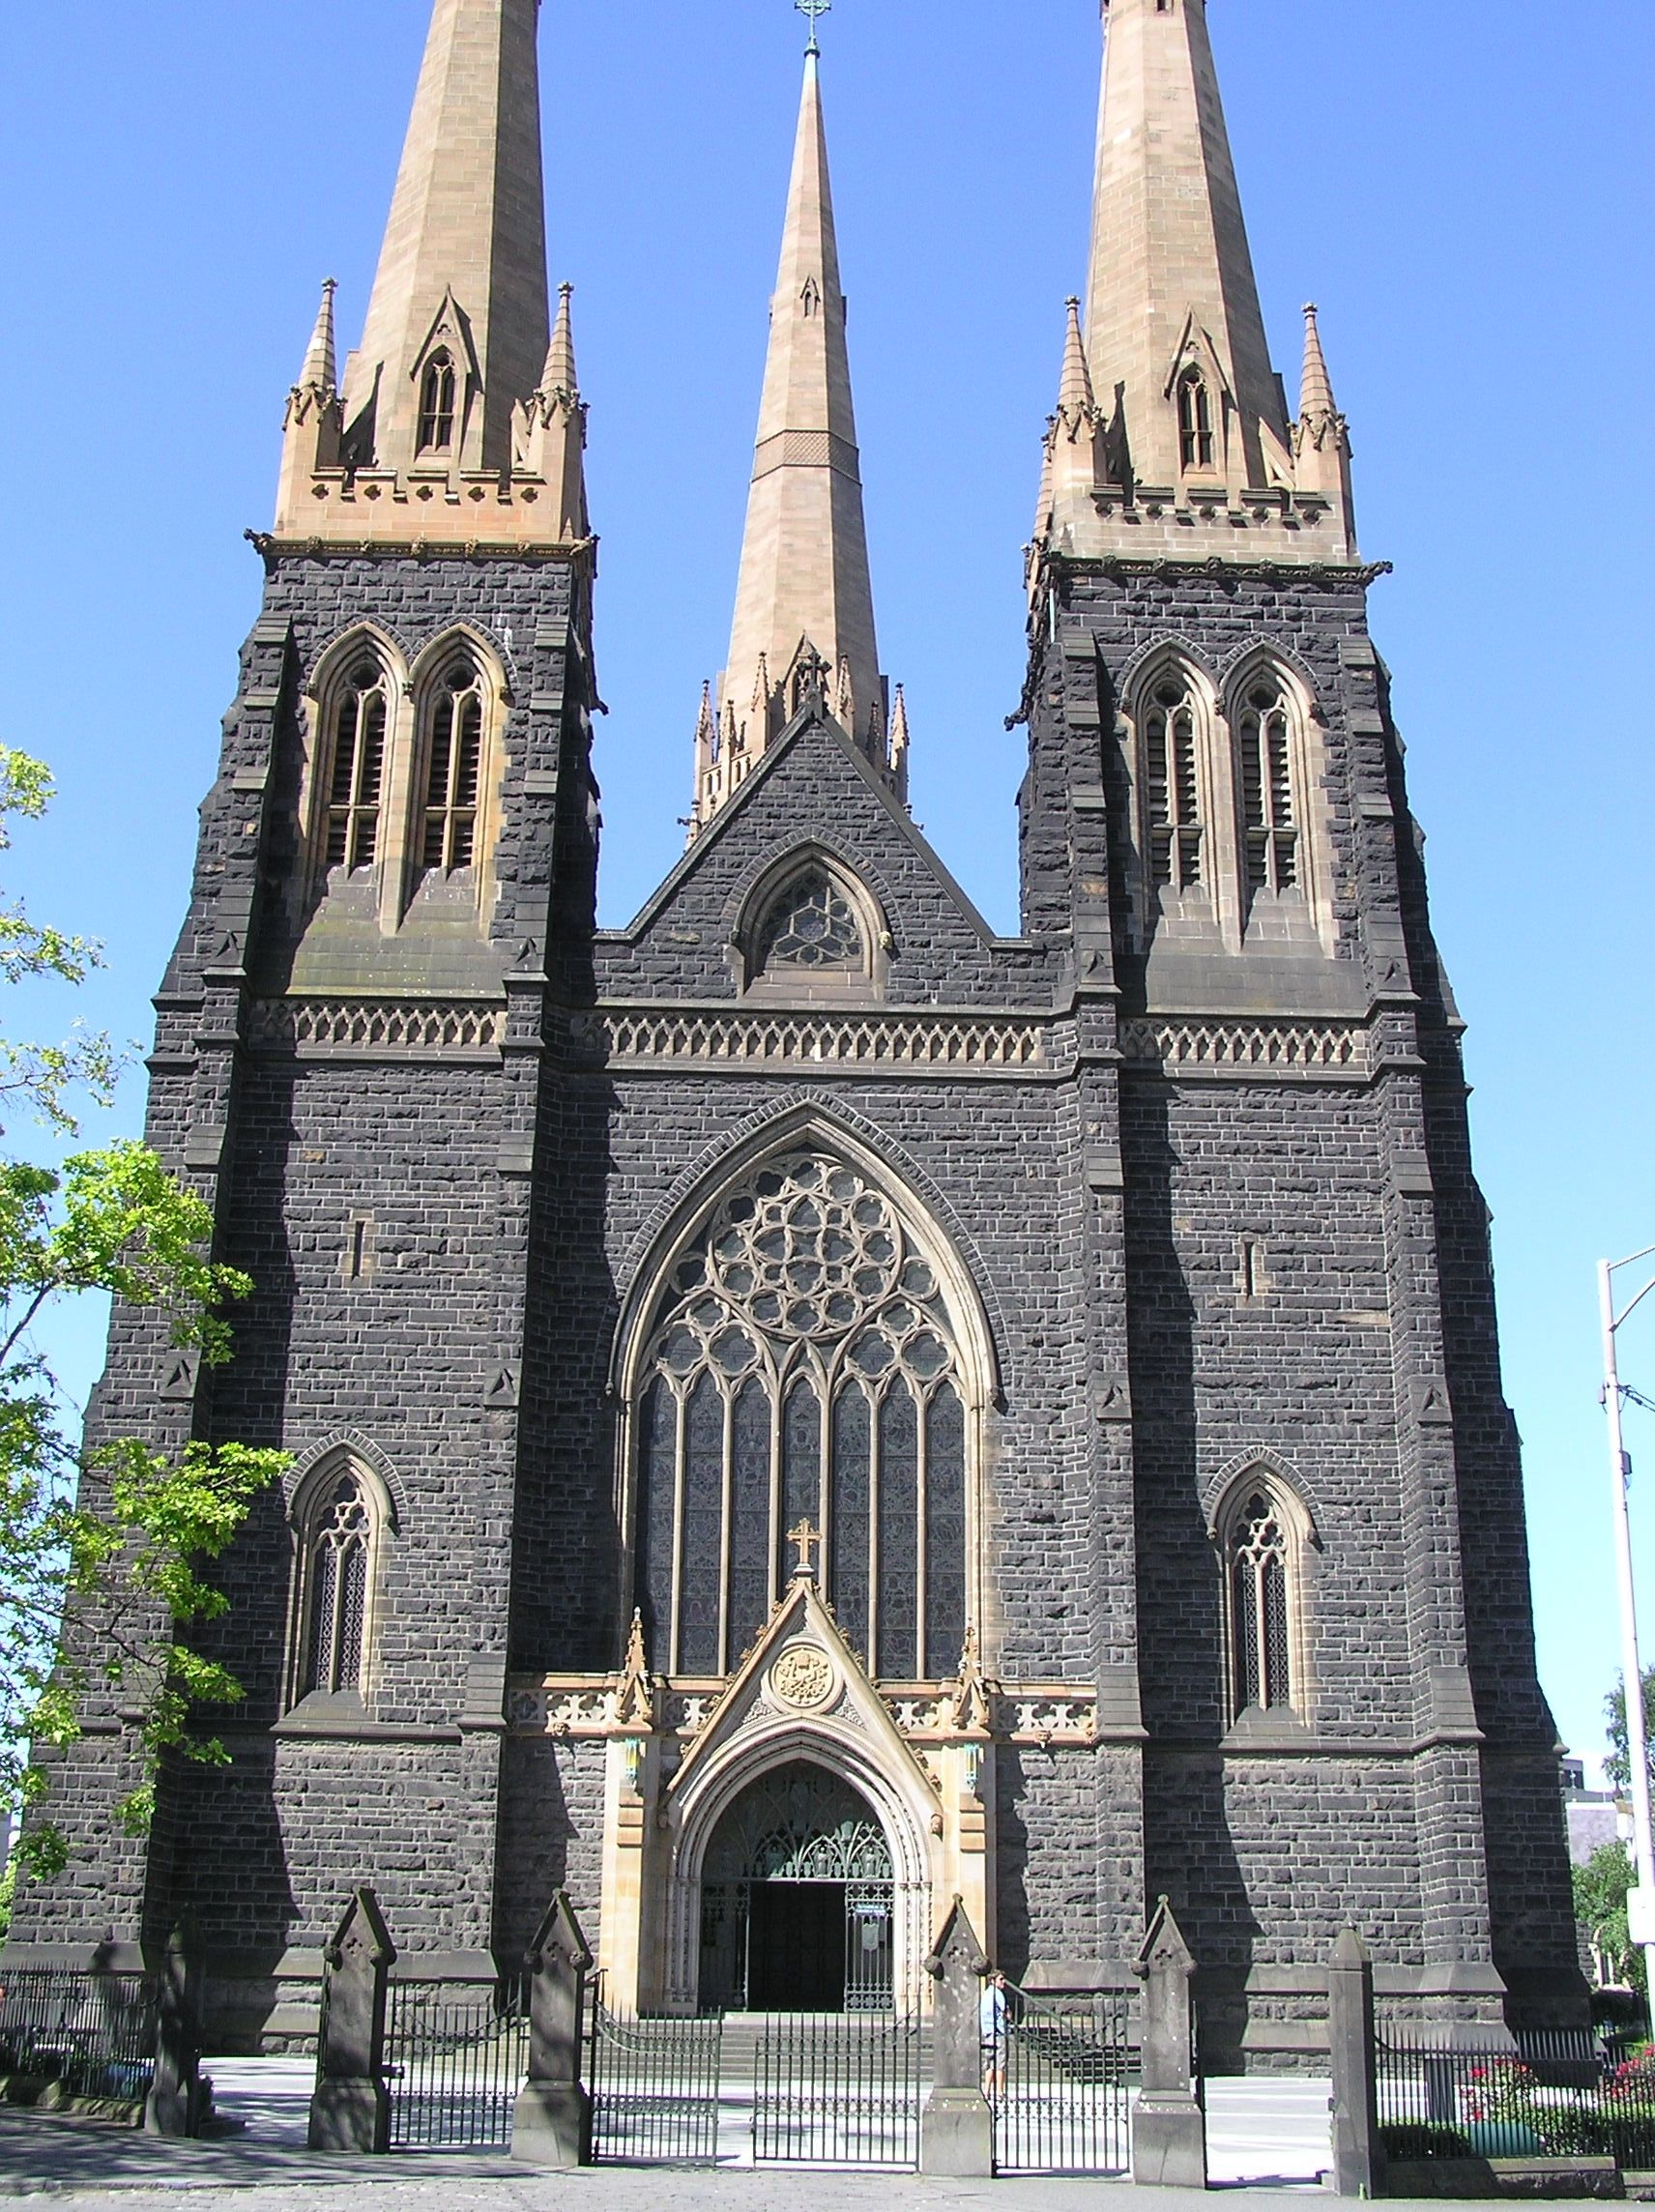 St. Patrick's Cathedral, Melbourne Australia